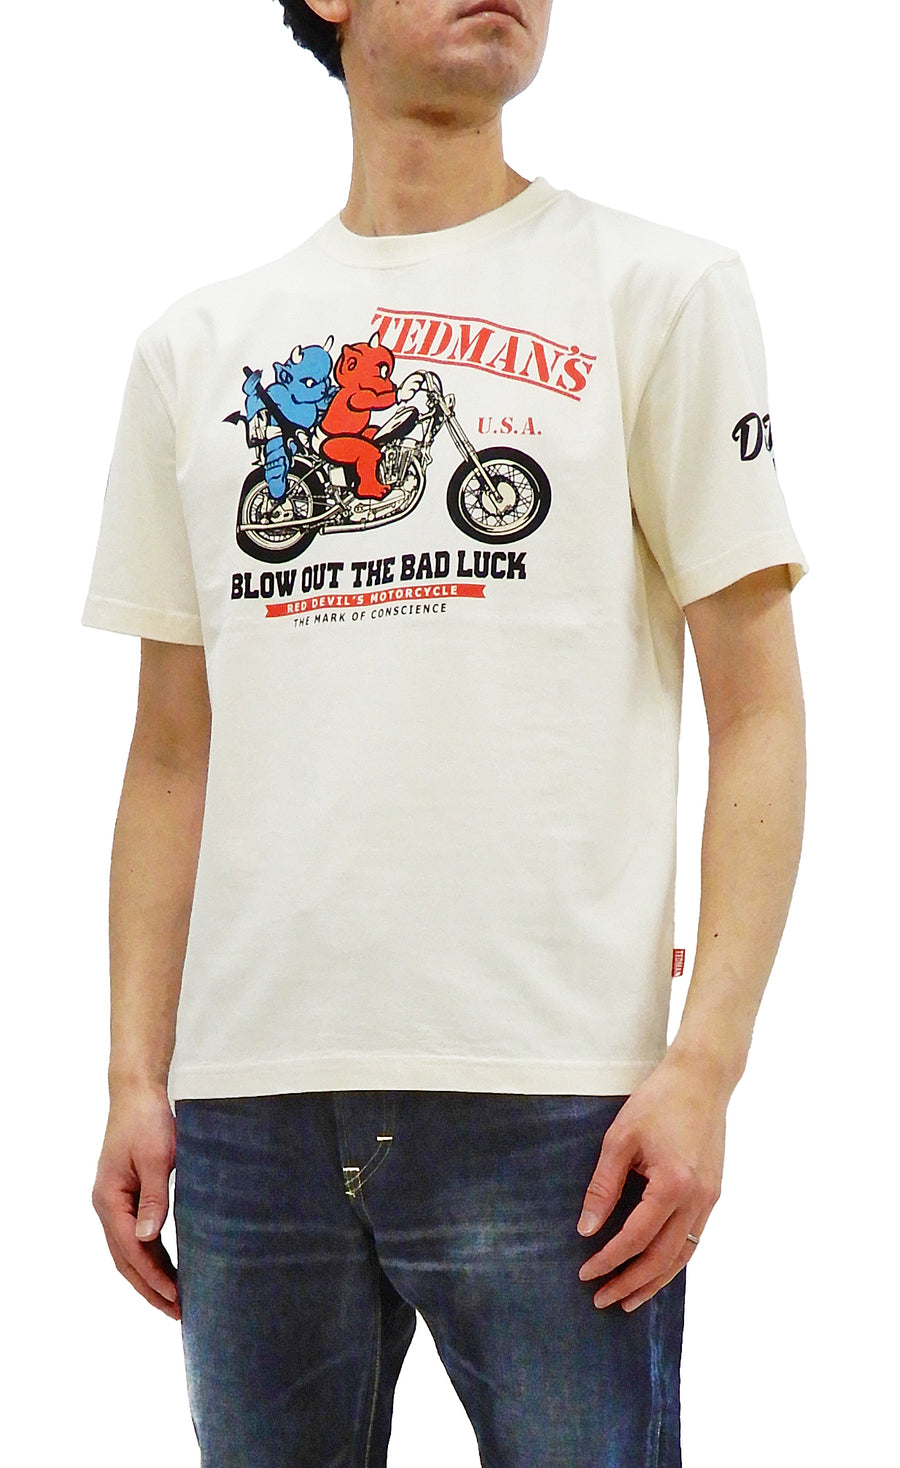 Tedman T-Shirt Men's Lucky Devil Motorcycle Graphic Short Sleeve Tee TDSS-532 Off White